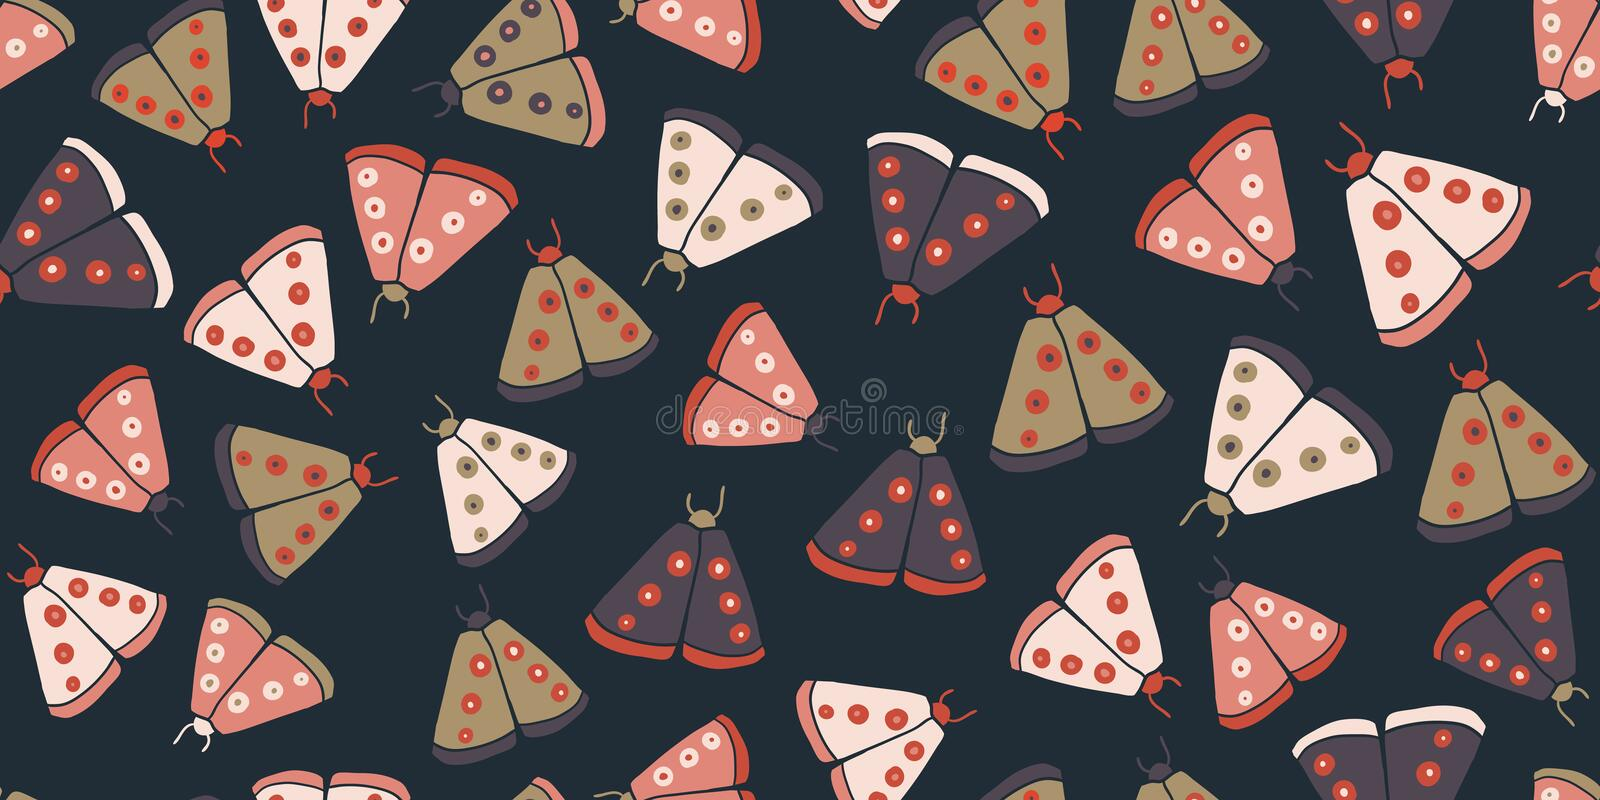 Seamless pattern with decorative butterflies moth royalty free stock photos